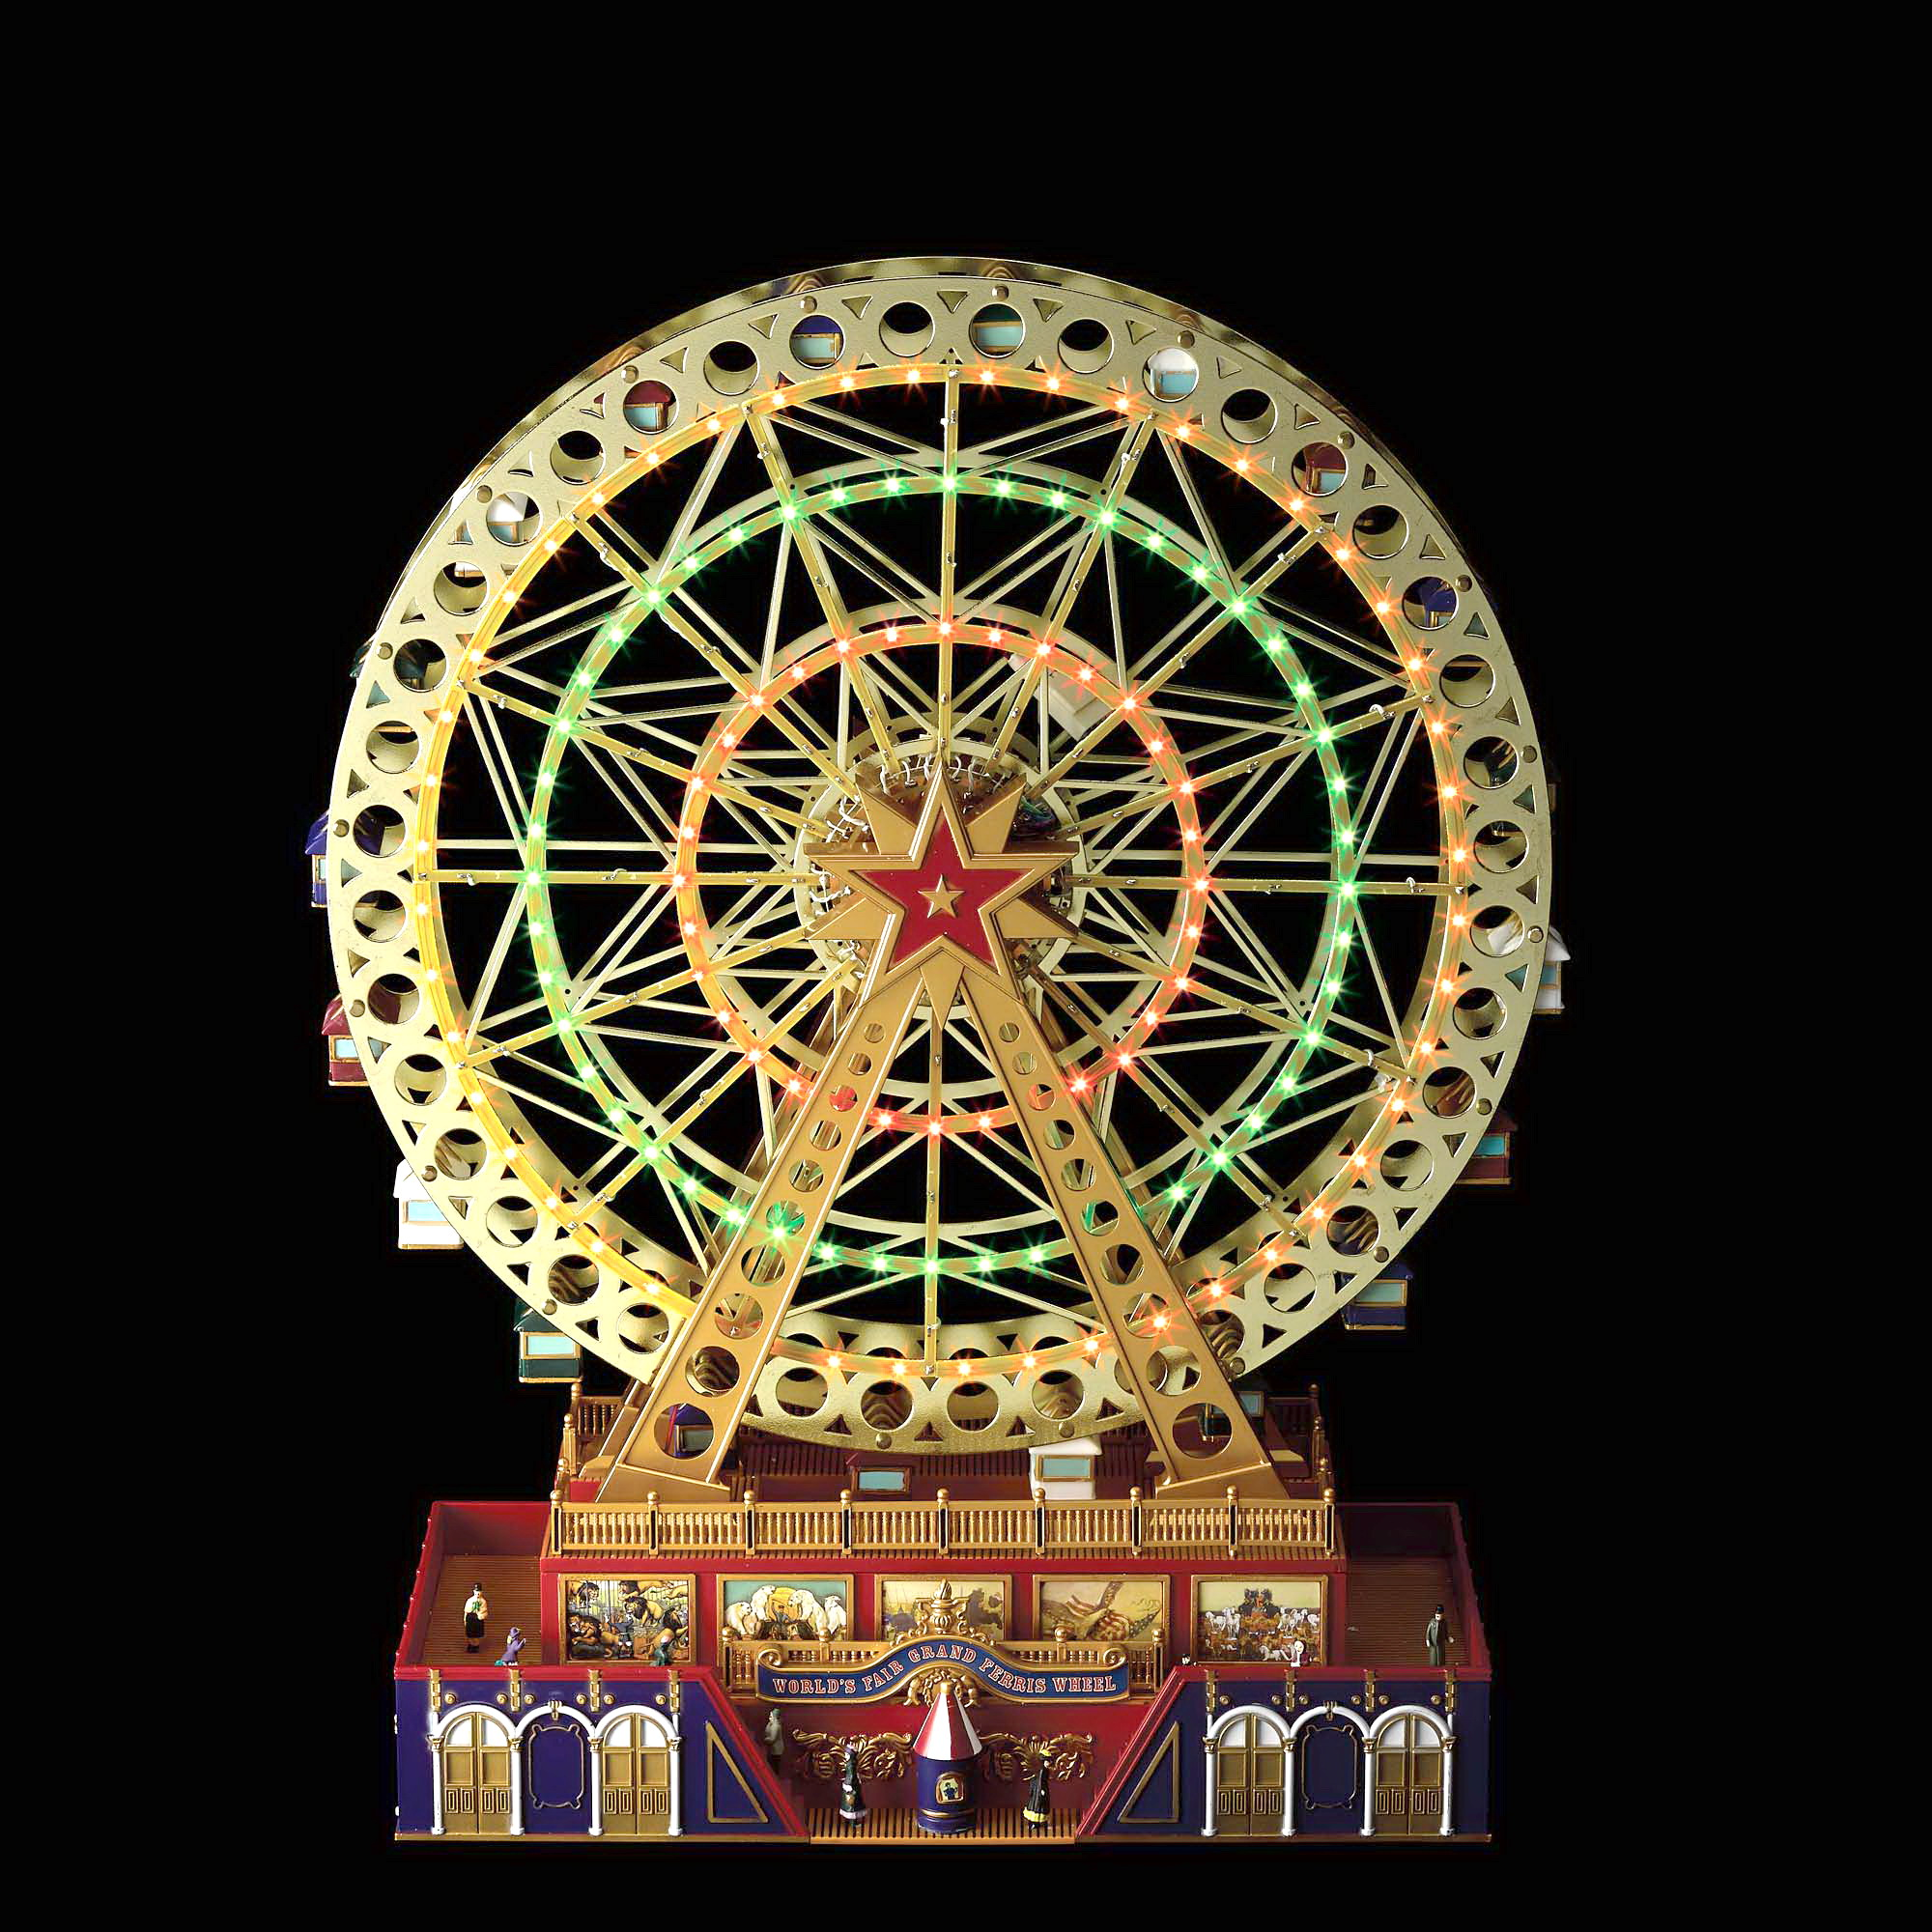 Mr. Christmas – World S Fair Grand Ferris Wheel | 51053797959 | MX-79795